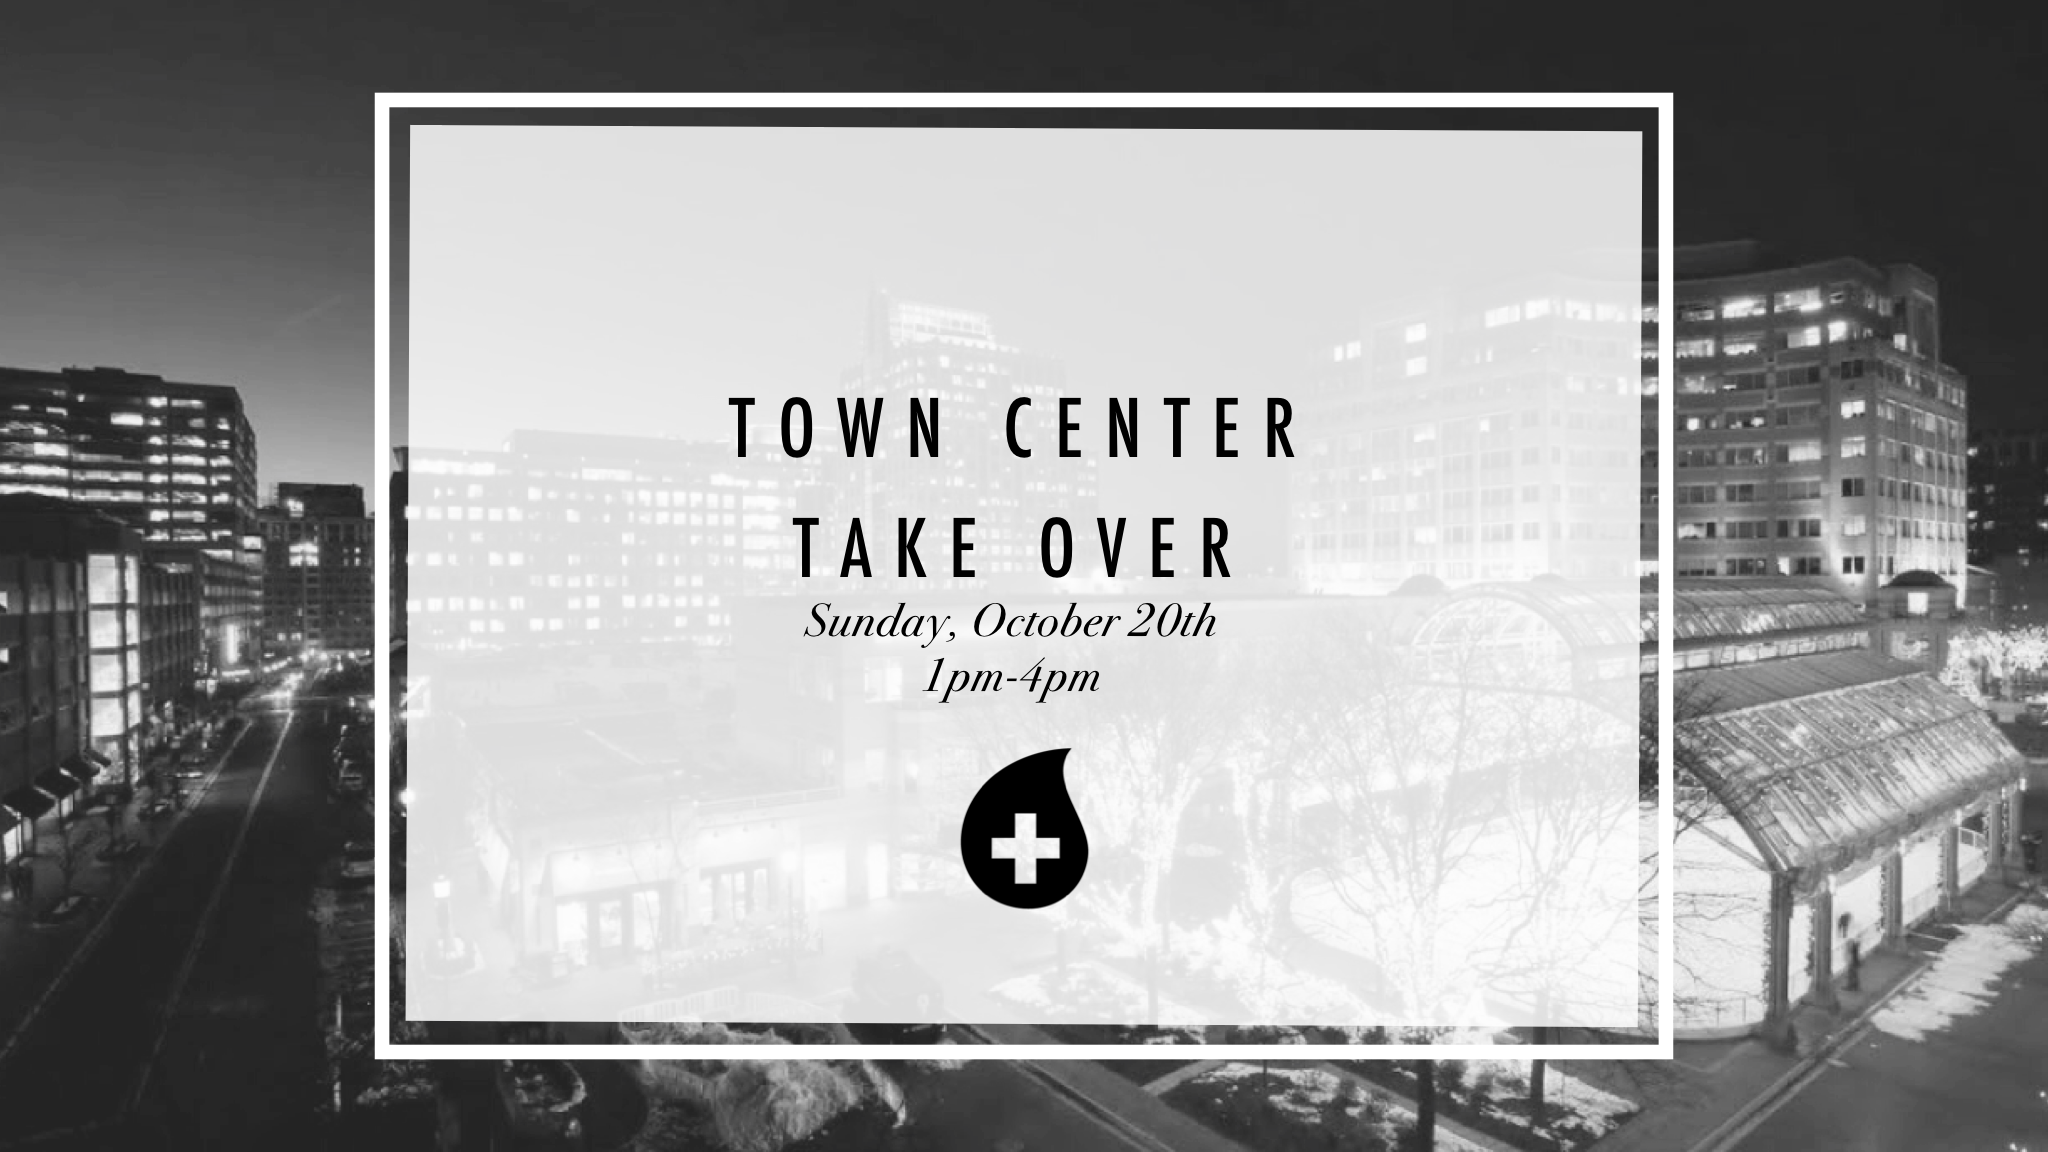 TOWNCENTERTAKEOVER image